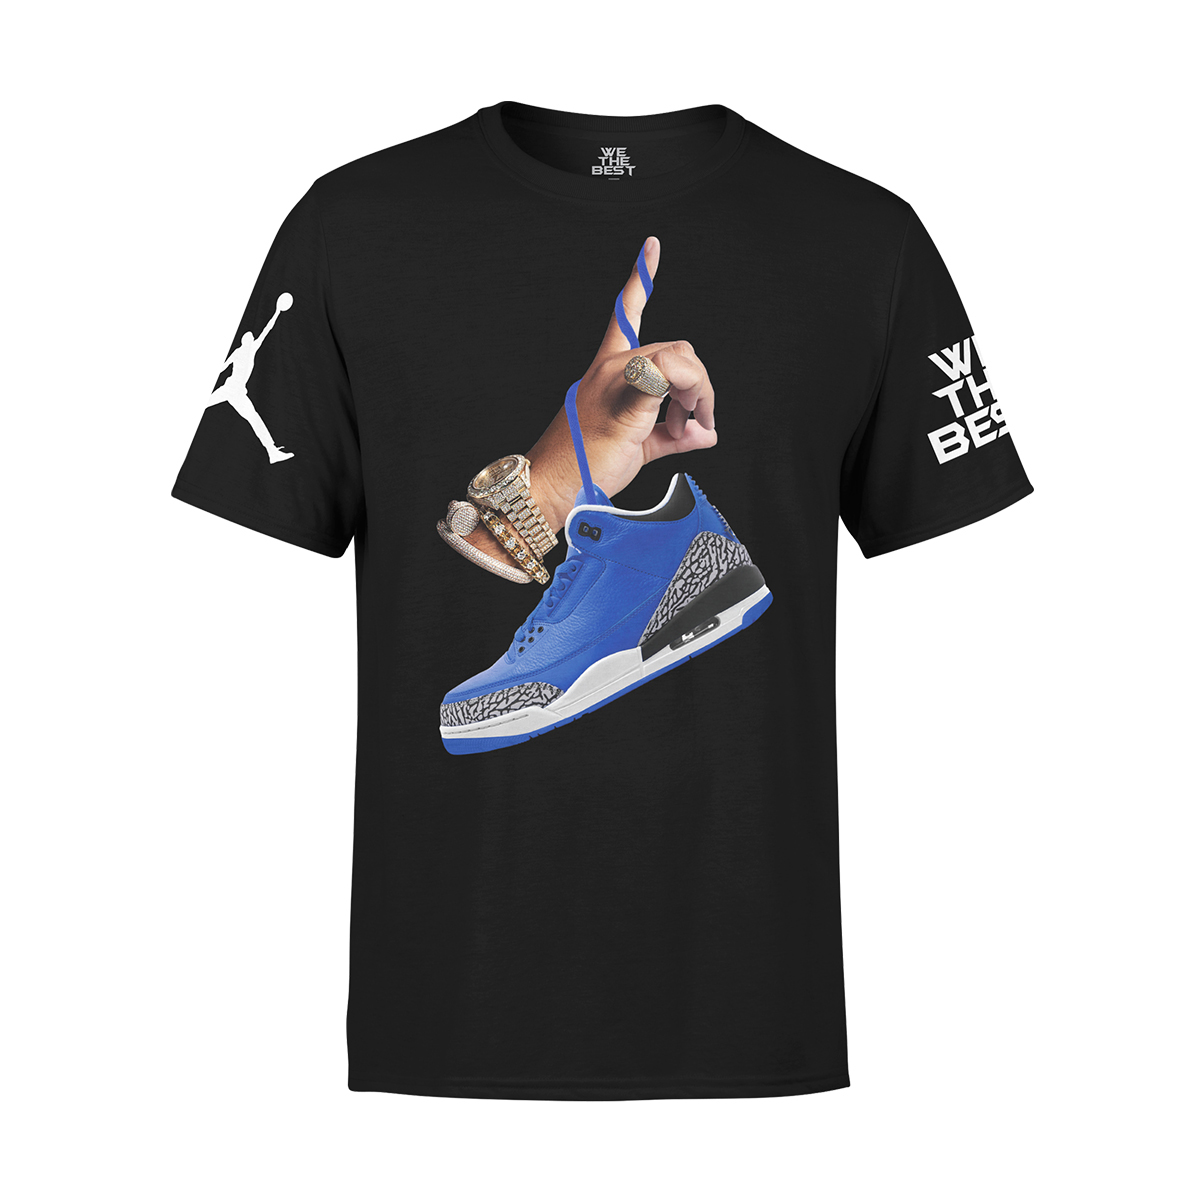 DJ Khaled x Jordan Leather Sneakers T-shirt - Black